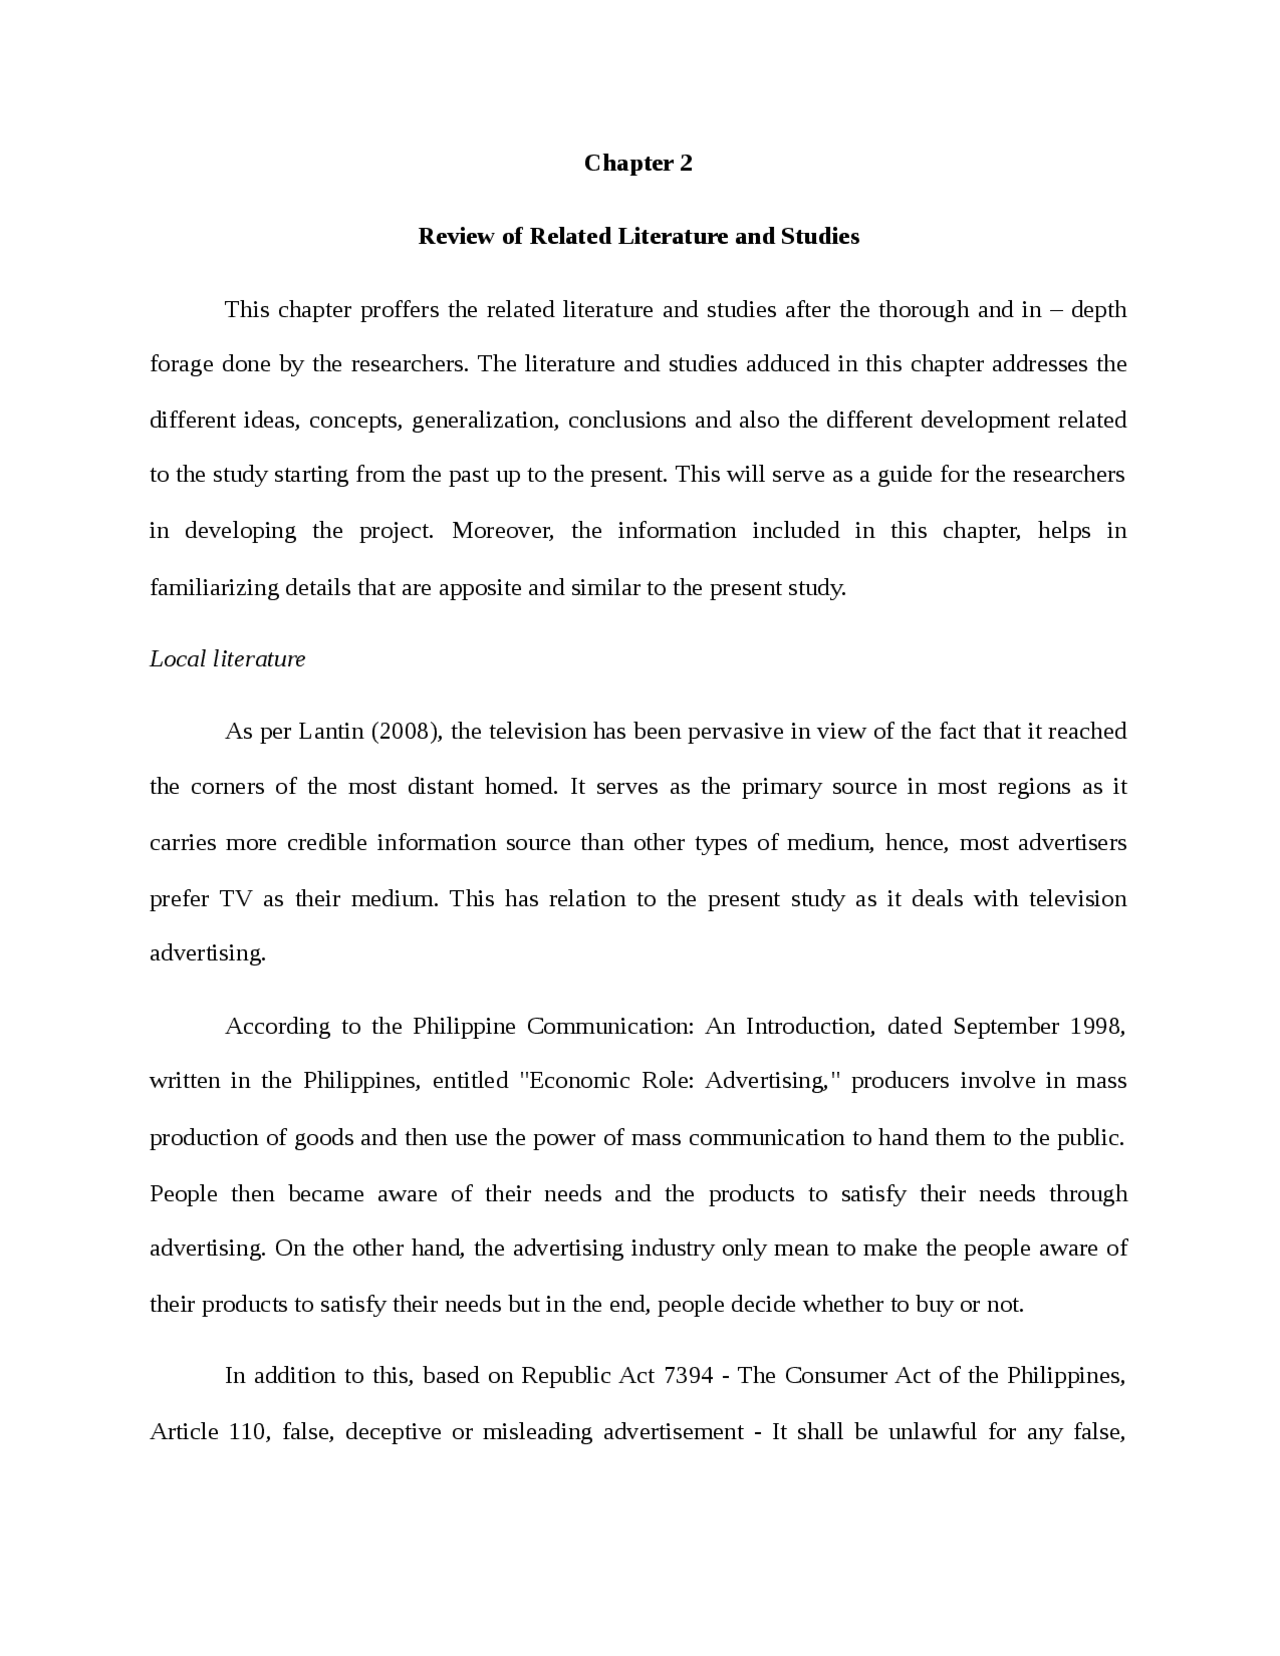 thesis chapter 2 format